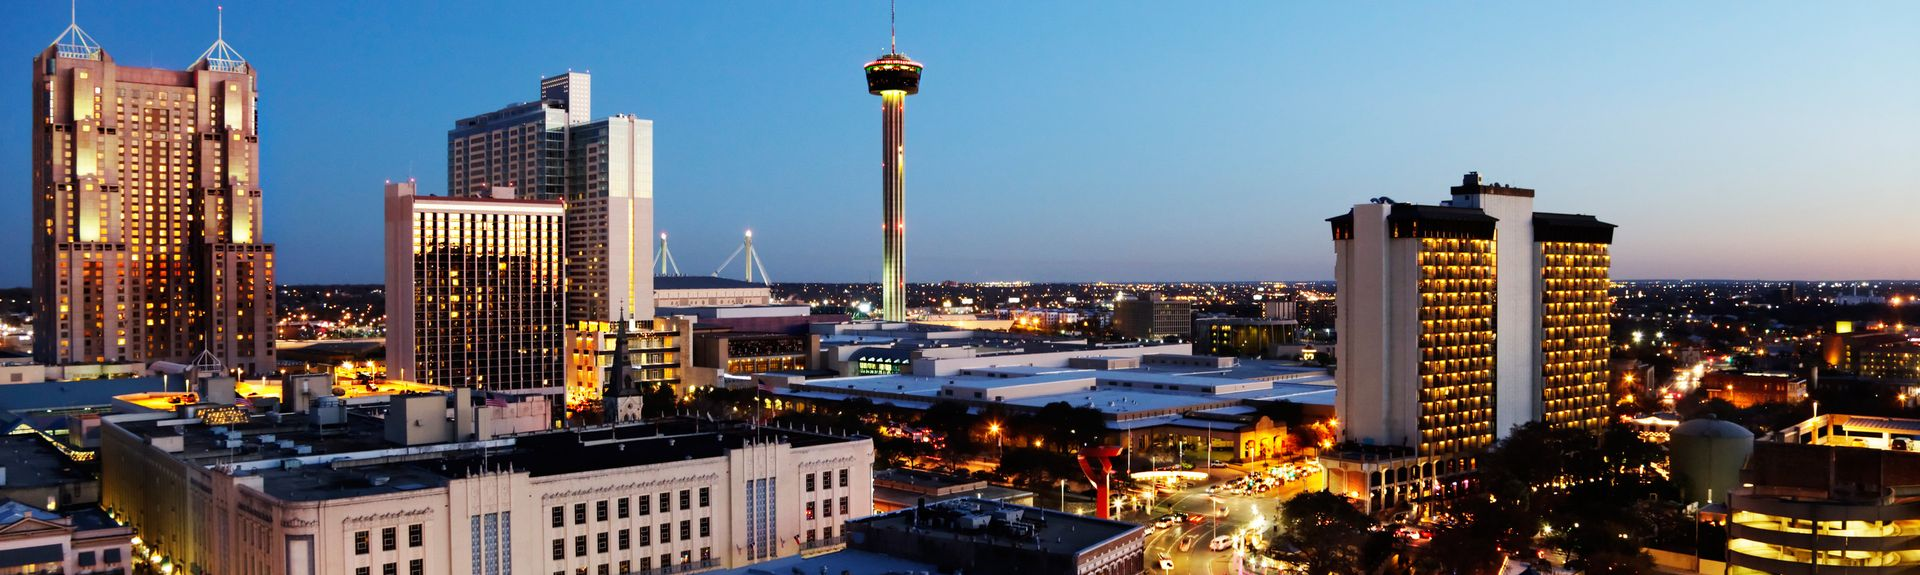 Downtown San Antonio, San Antonio, Texas, United States of America